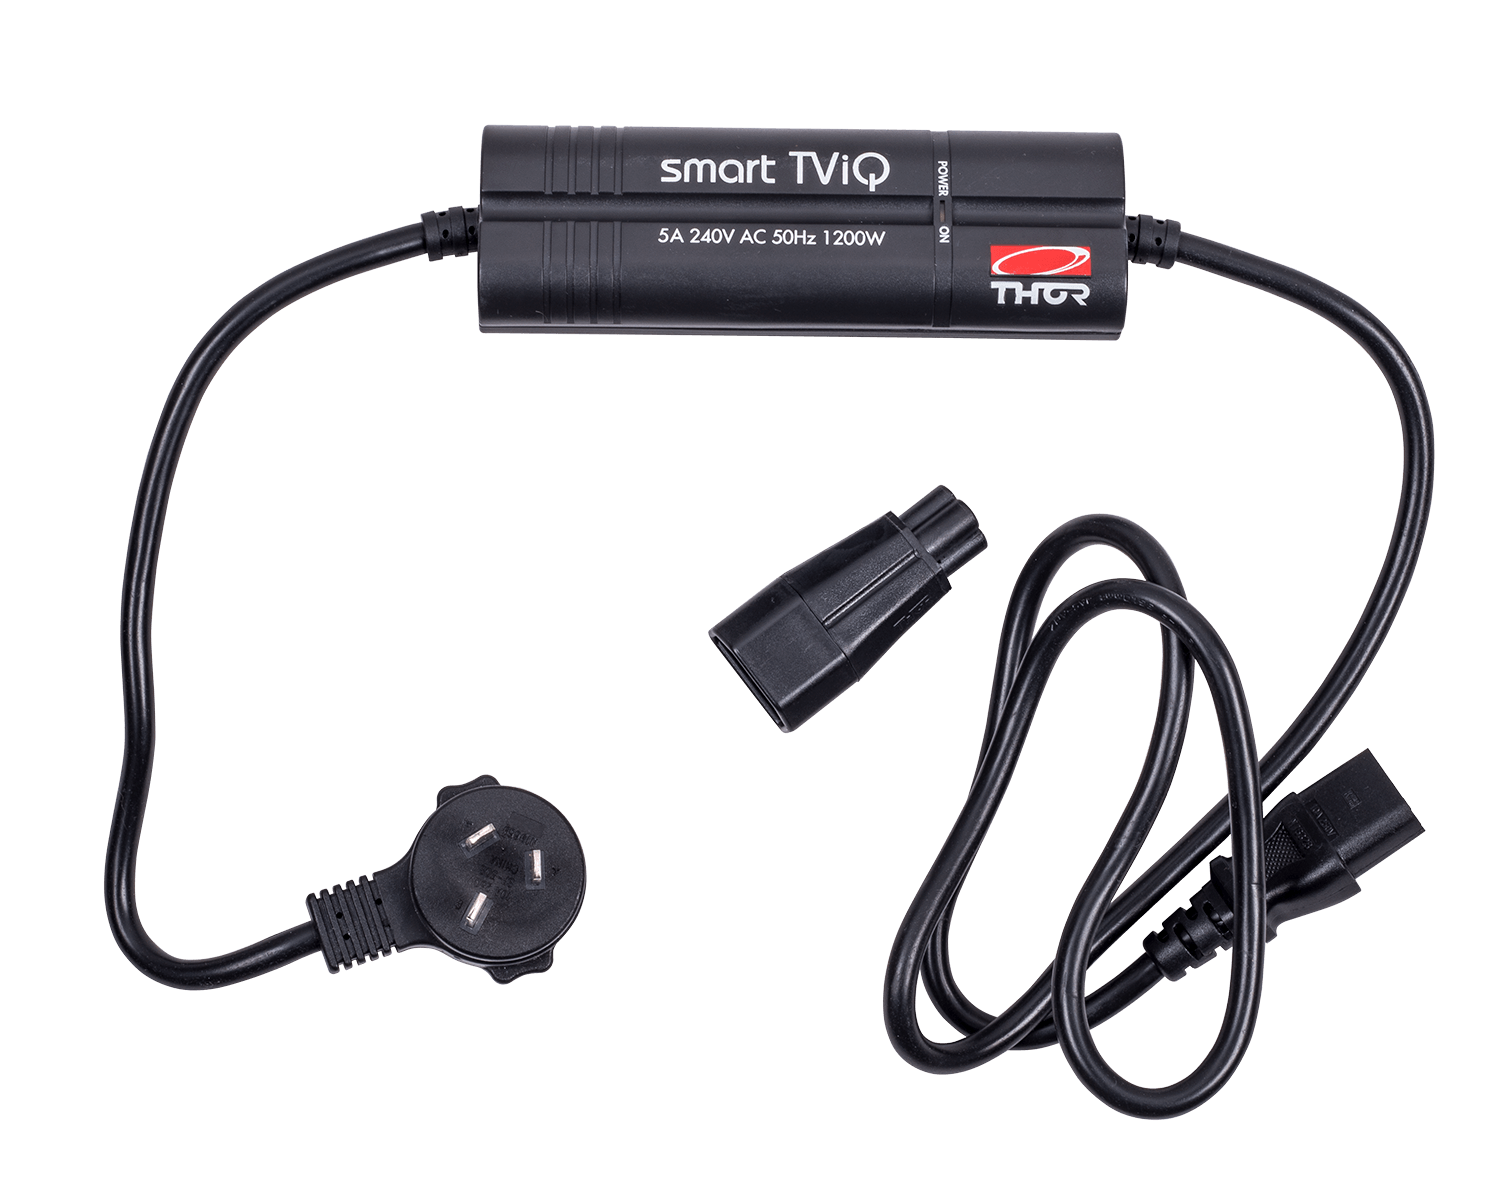 THOR SMART TViQ-IEC IN-LINE POWER FILTER AND PROTECTION | THOR